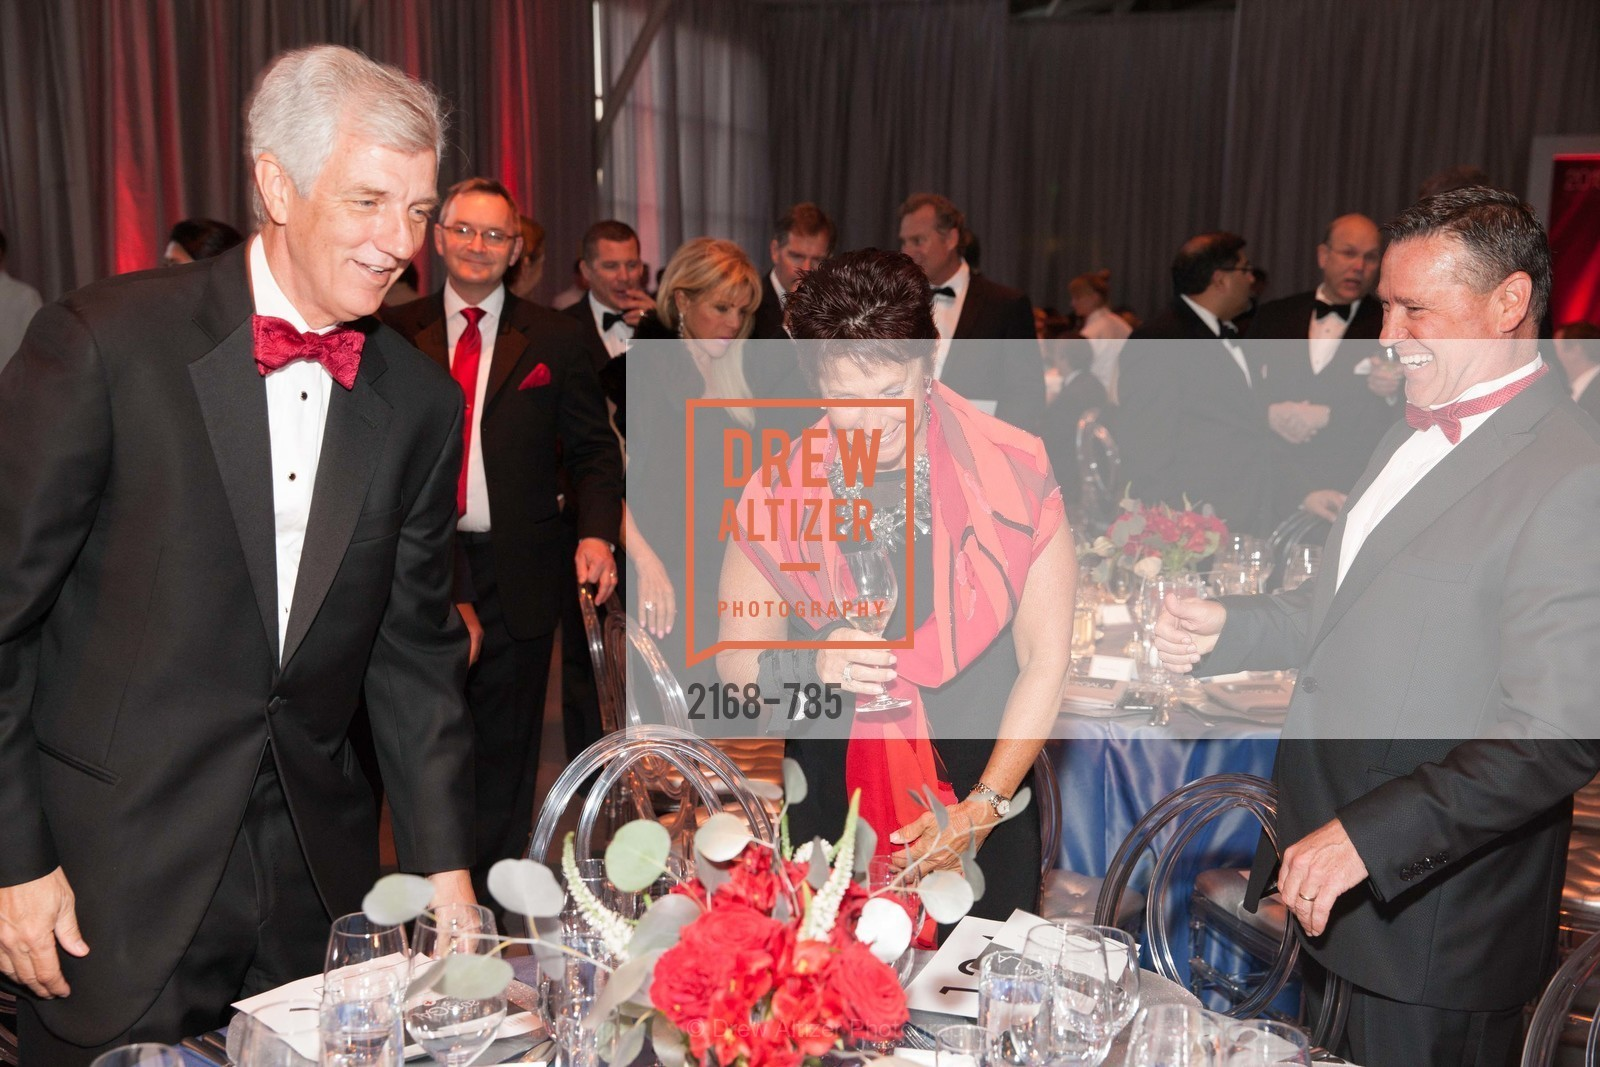 Lee Anderson, 2015 RED CROSS Gala, US, April 12th, 2015,Drew Altizer, Drew Altizer Photography, full-service agency, private events, San Francisco photographer, photographer california